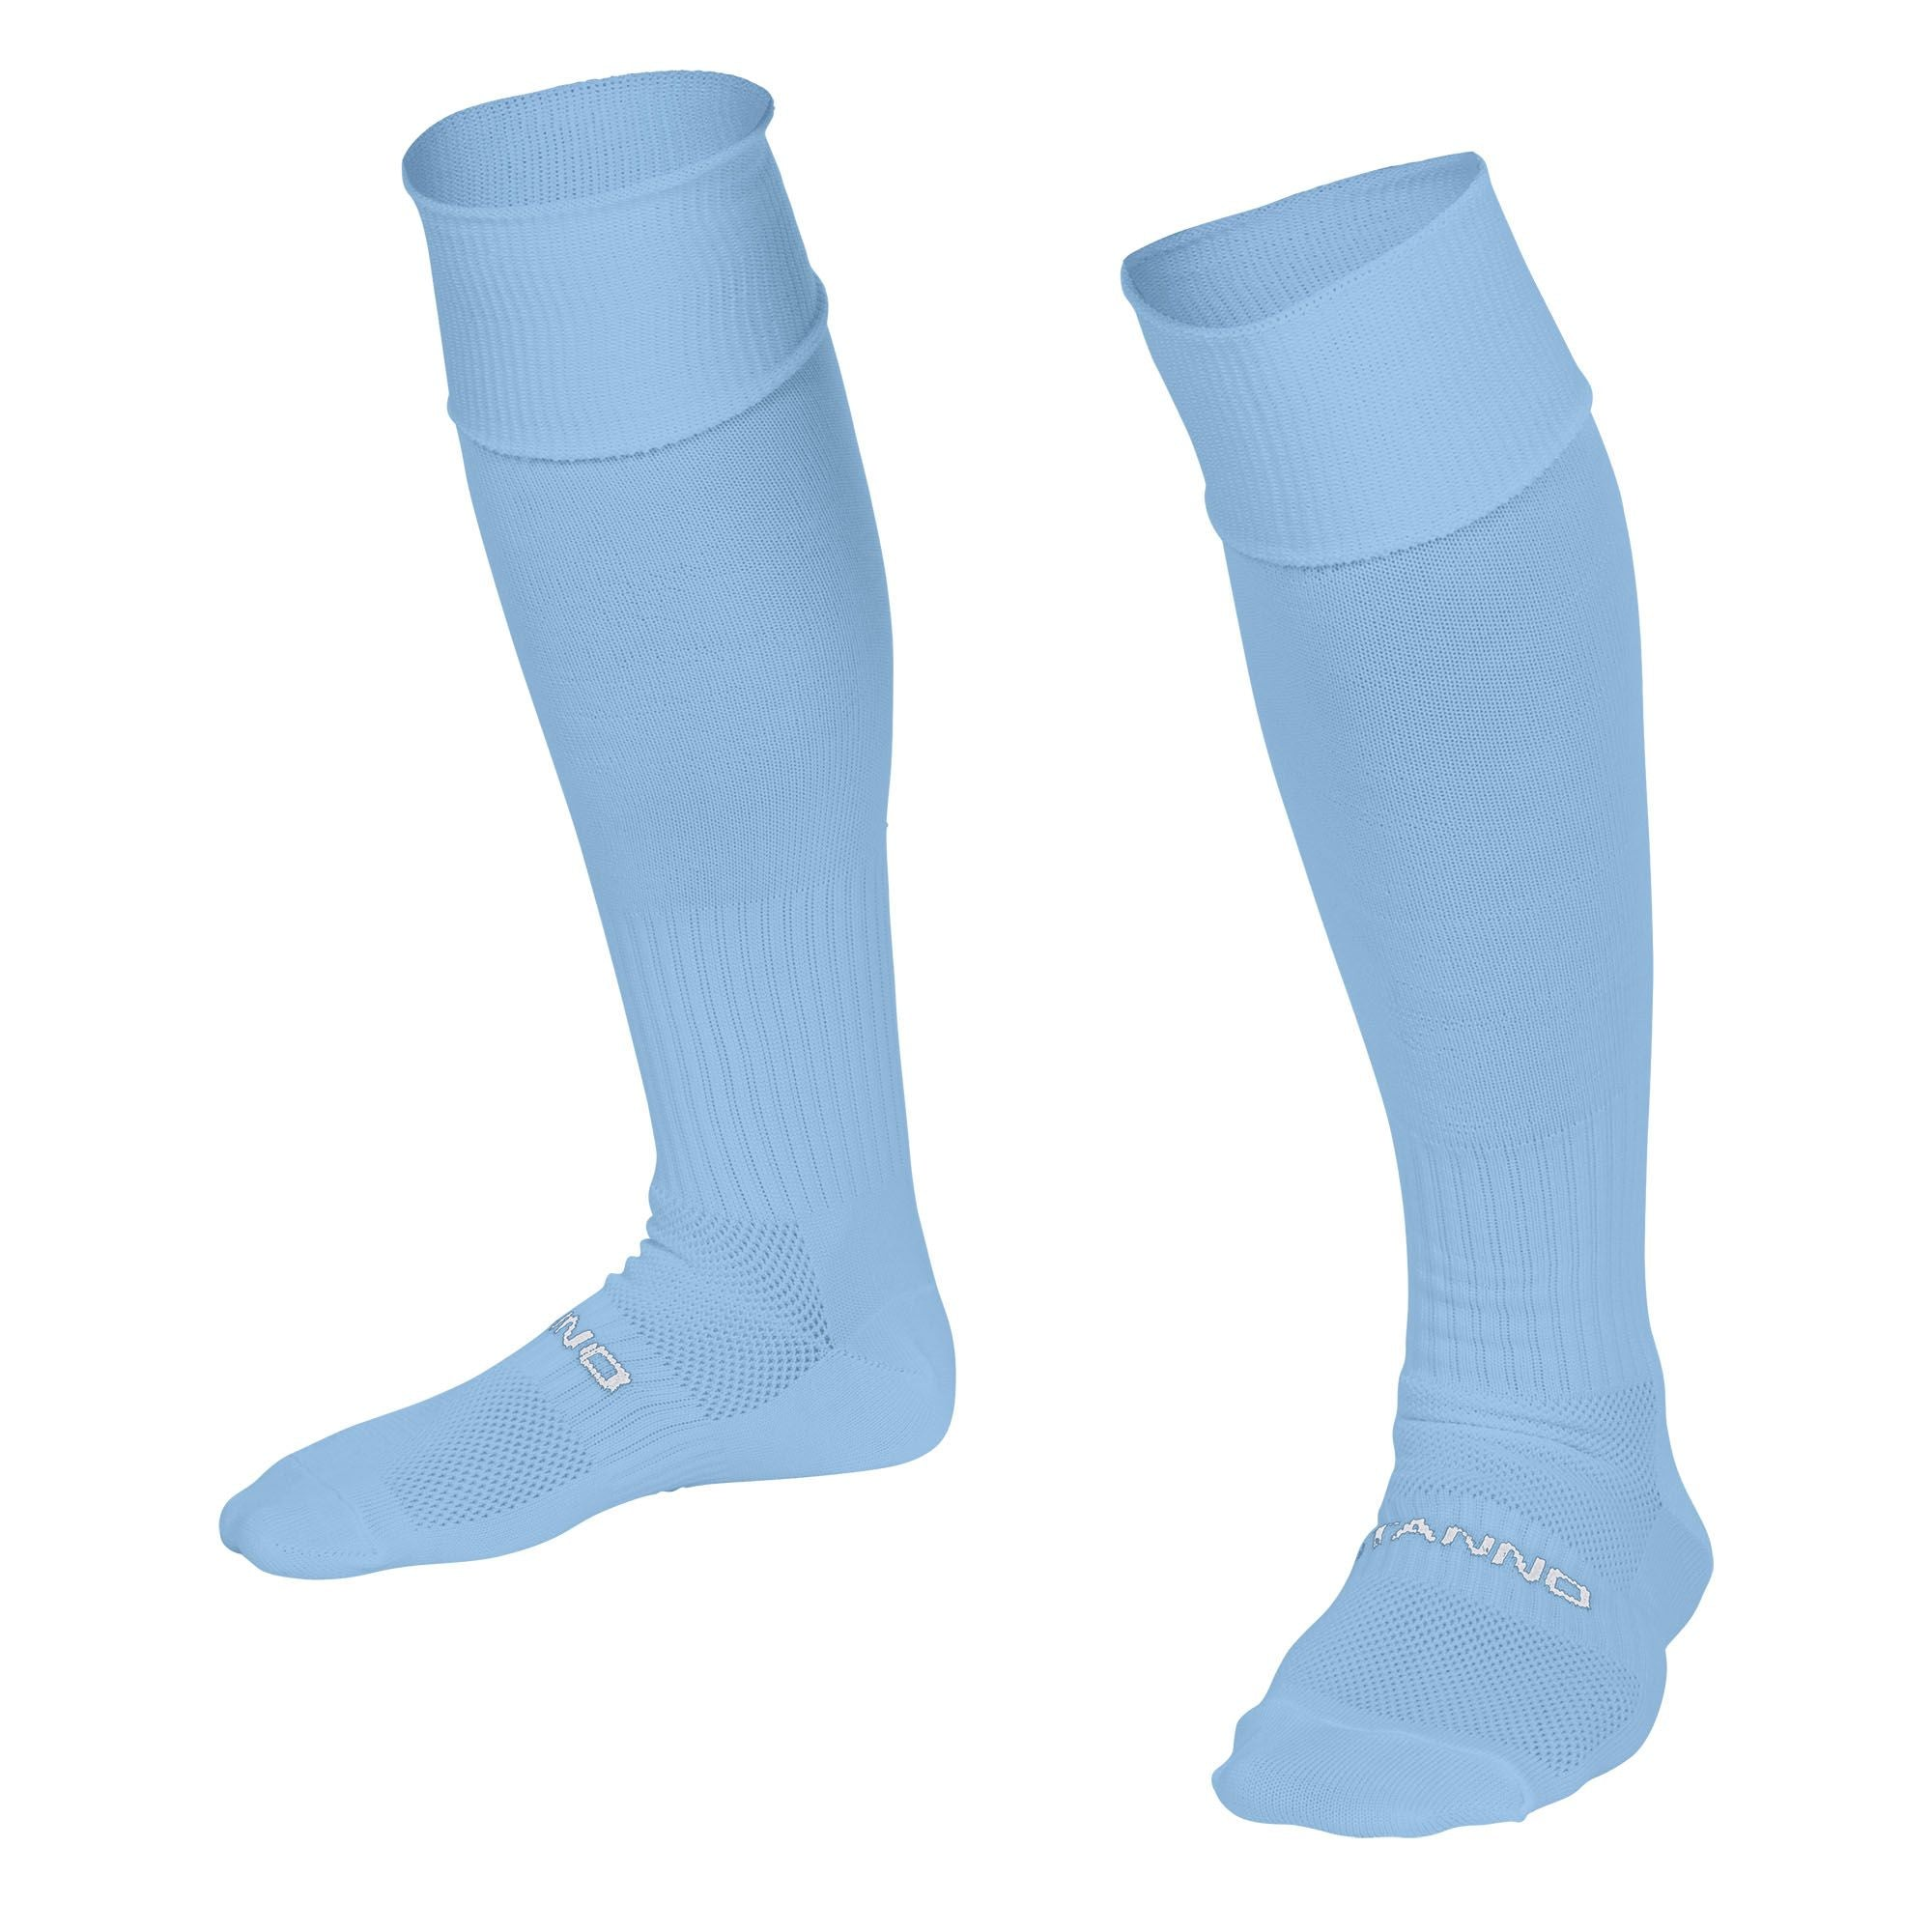 Stanno Park sock in sky blue with Stanno text across the top of the foot.